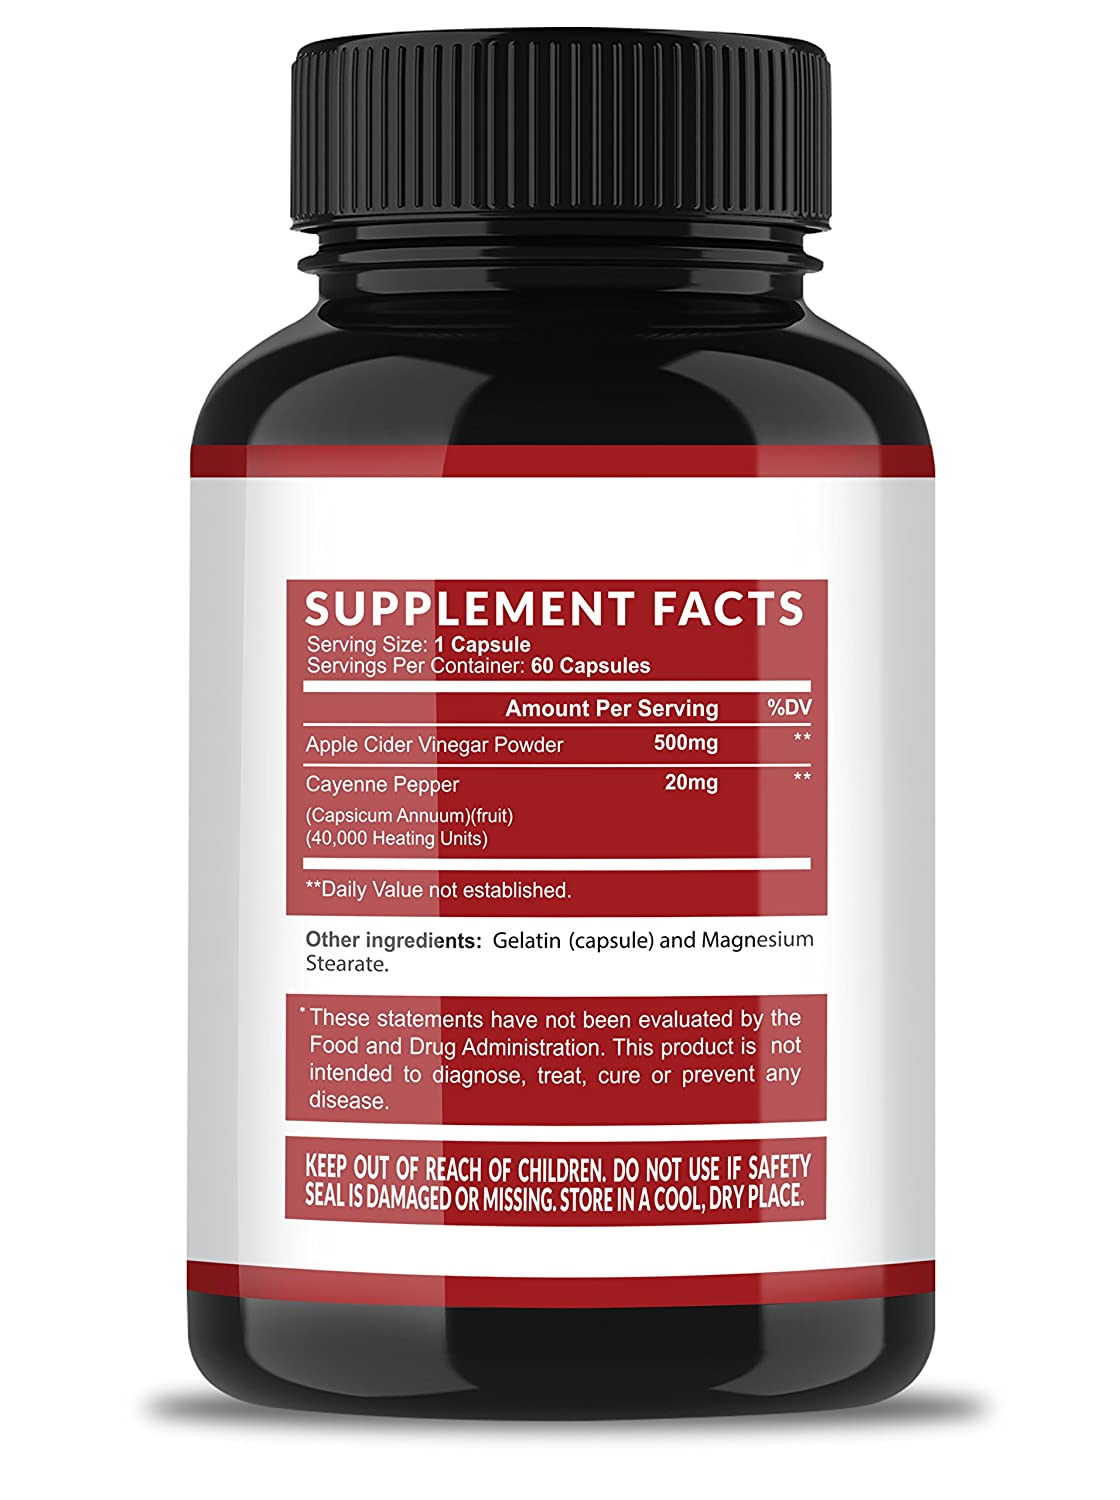 Havasu Nutrition Extra Strength Apple Cider Vinegar Pills - 500mg - Natural Detox, Digestion, Immune Booster - Powerful Cleansing Supplement, Premium-Non-GMO ACV - 60 Capsules